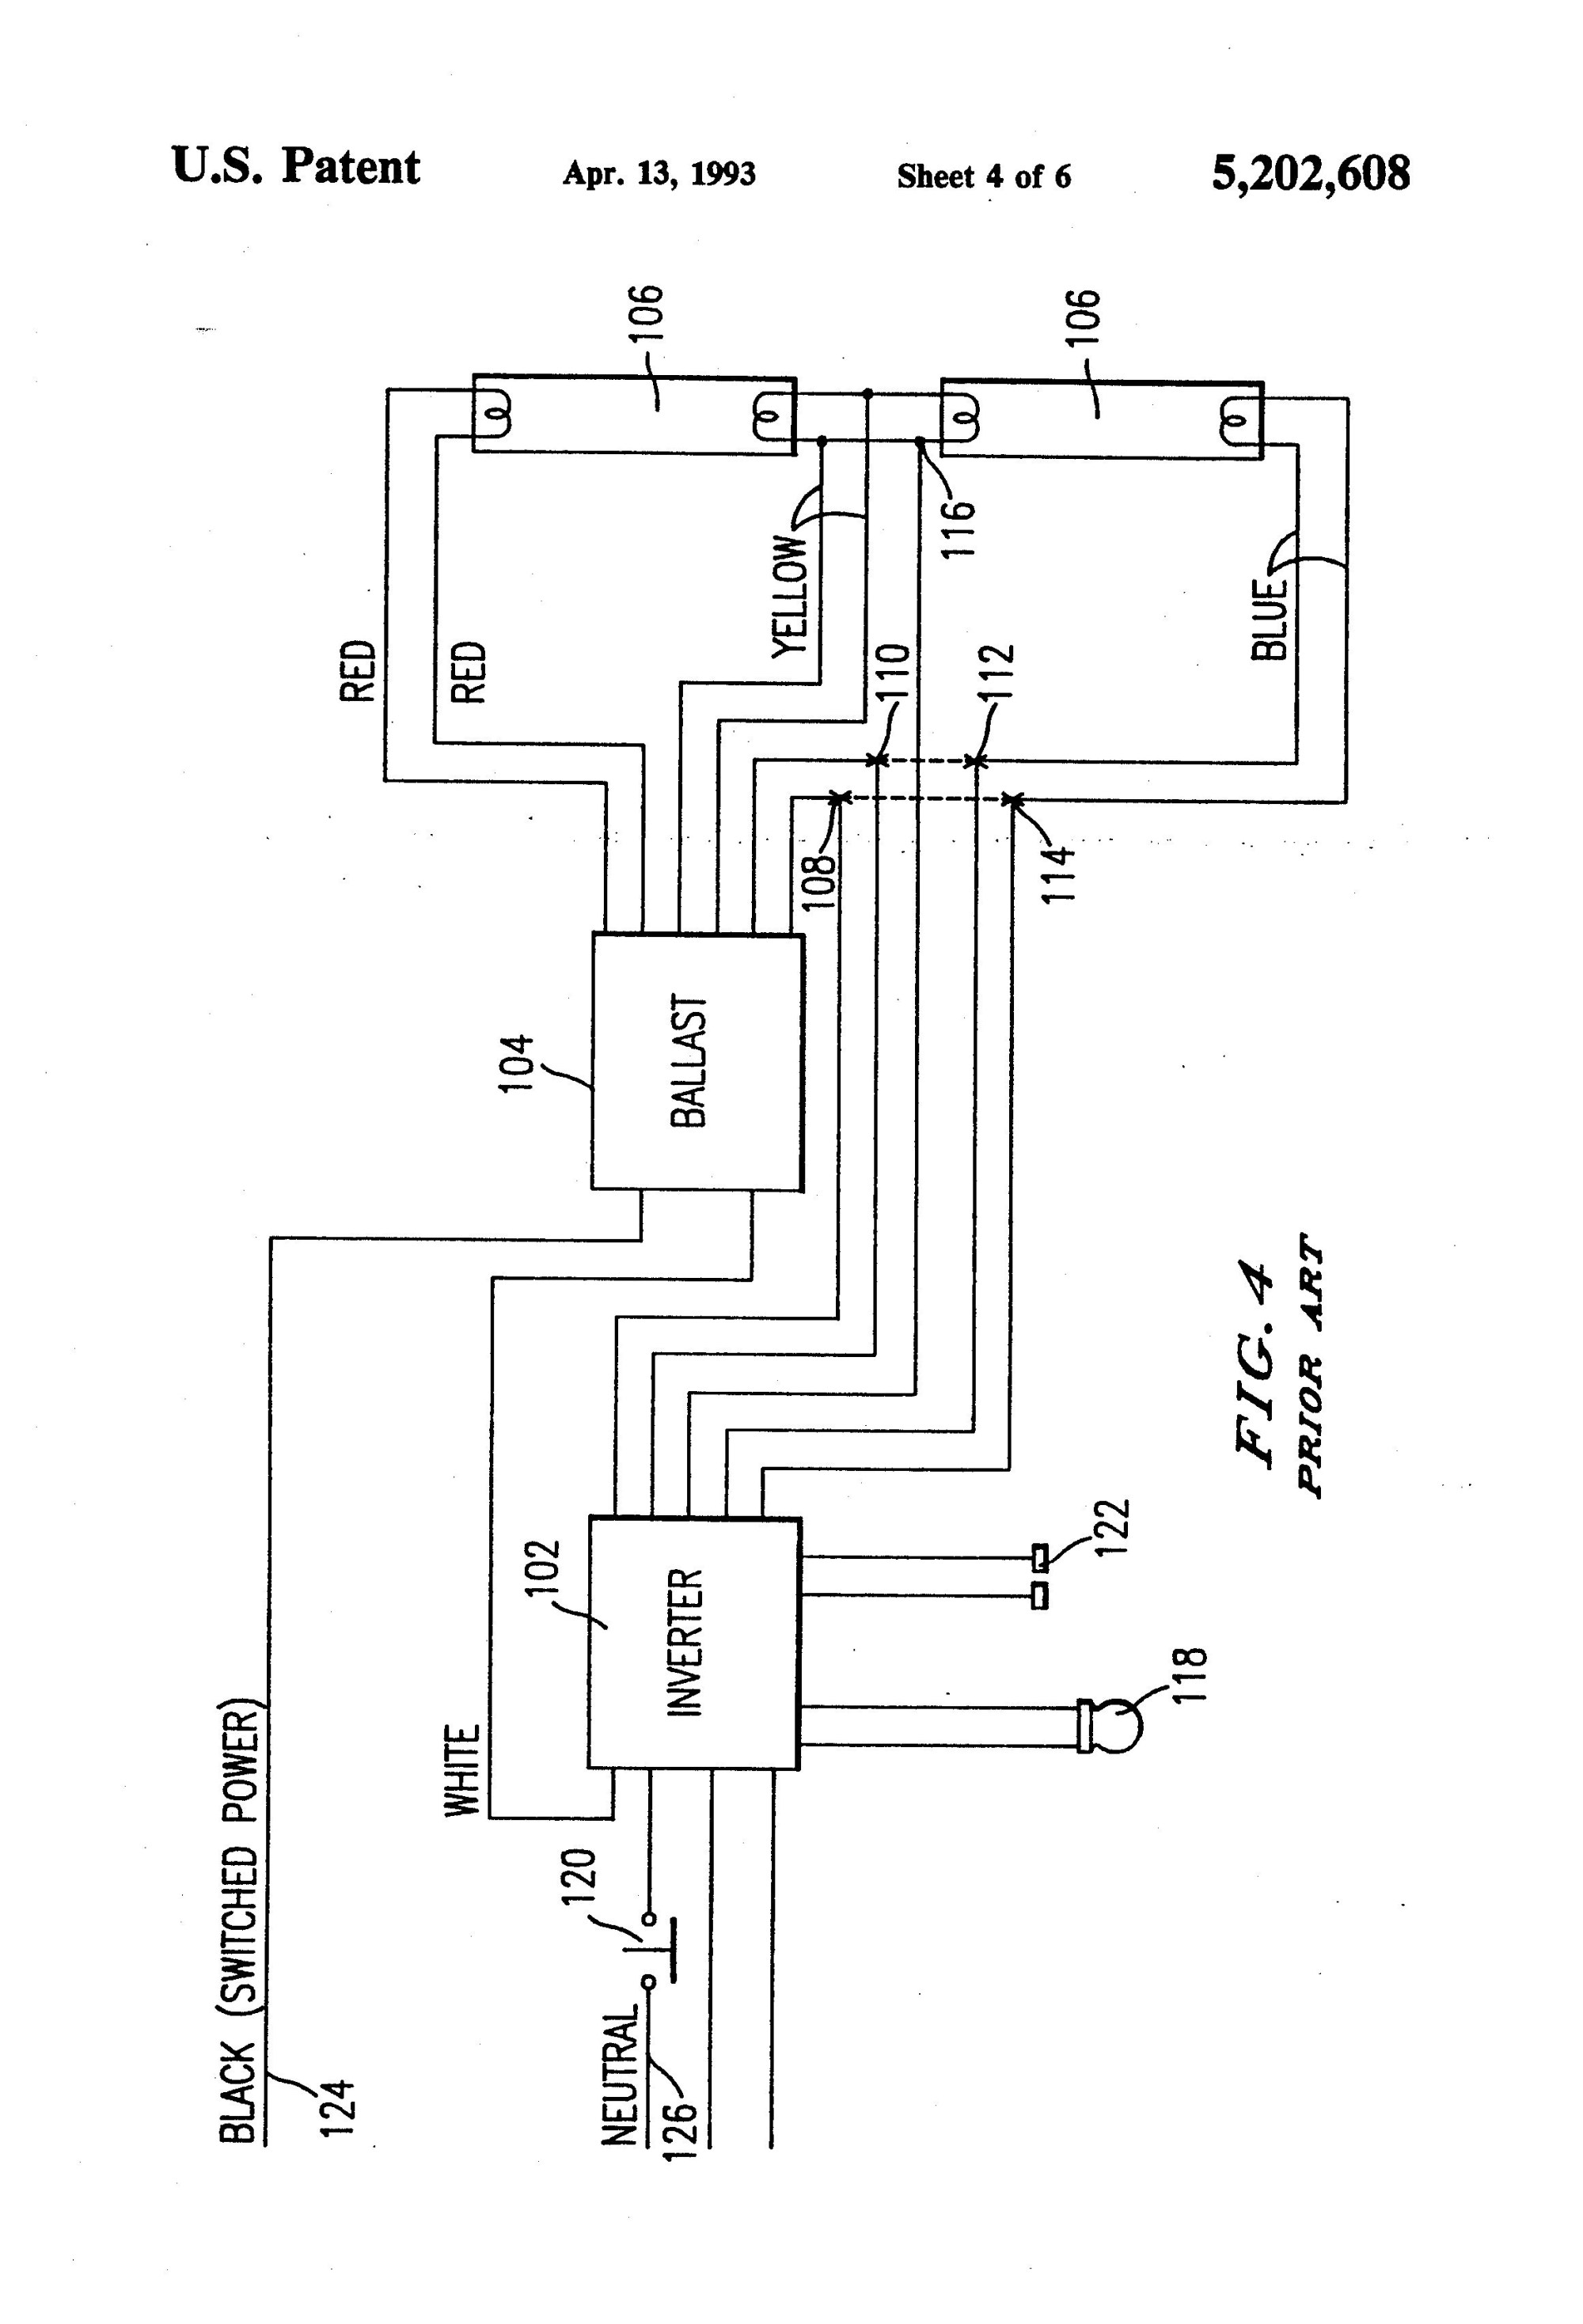 hight resolution of advance ballast wiring diagram with battery backup example advance fluorescent ballast wiring diagram